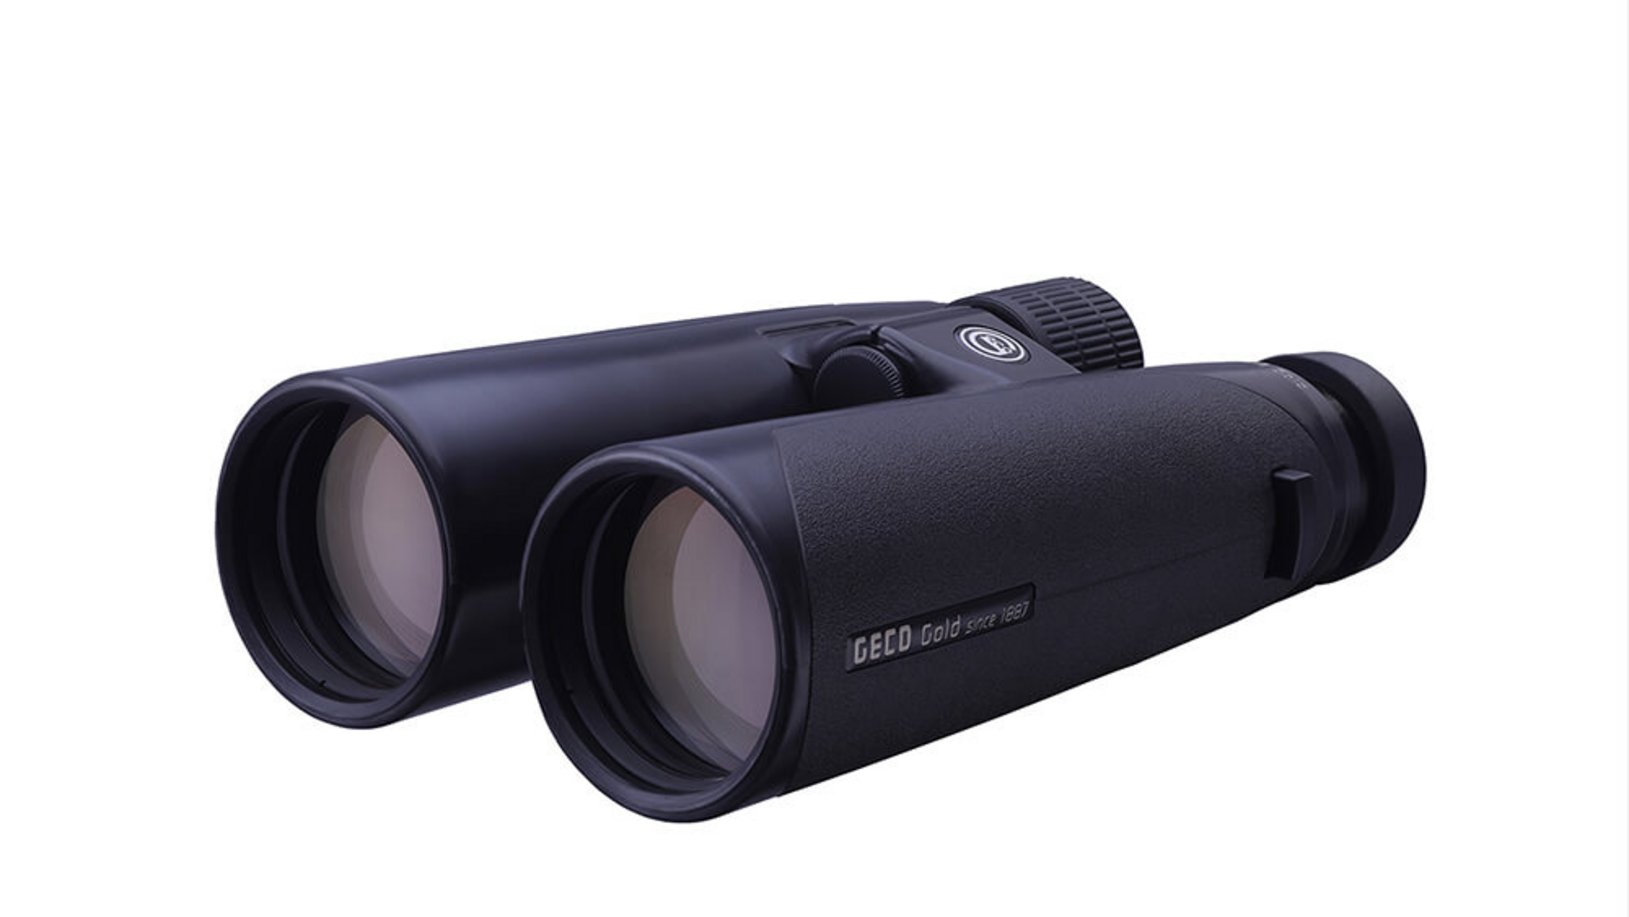 Image of the GECO Binocular Gold 10x50 Black in lying position